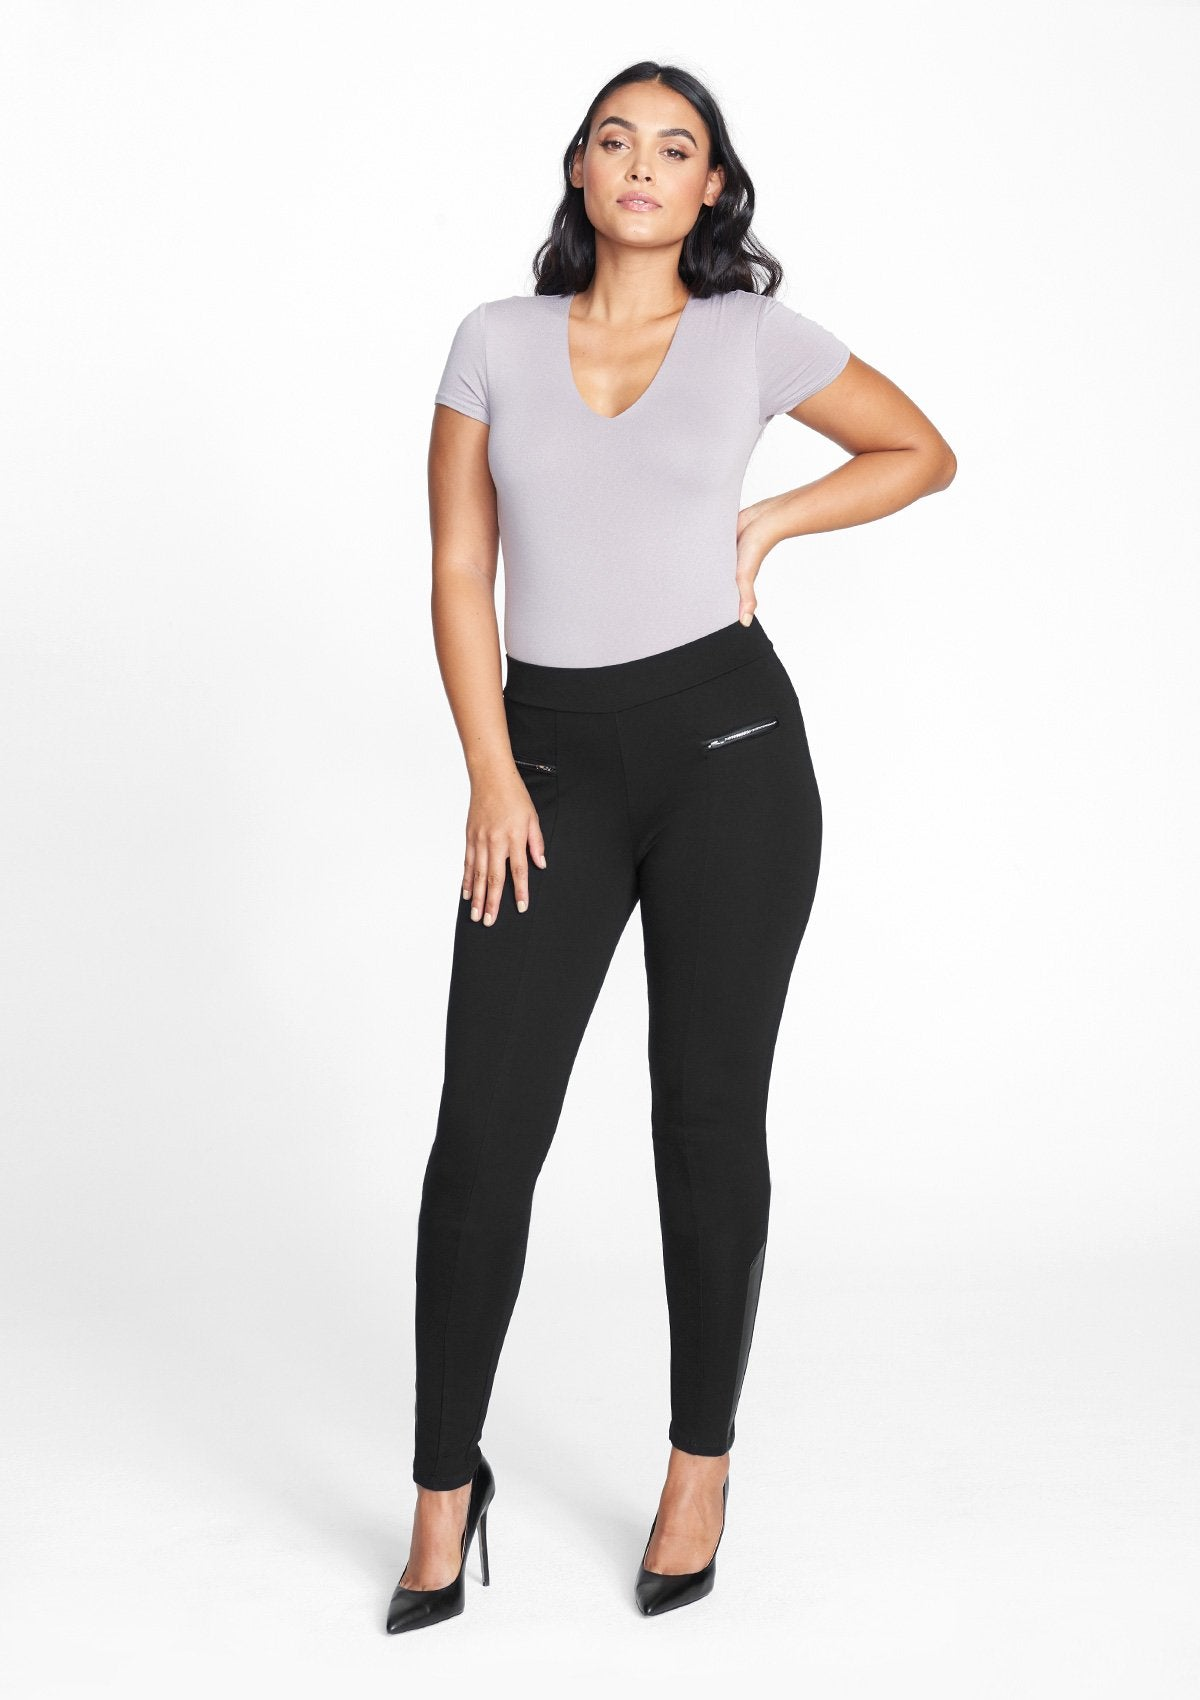 Alloy Apparel Tall Pull-On Dressy Pants for Women in Black Size XL length 37   Polyester